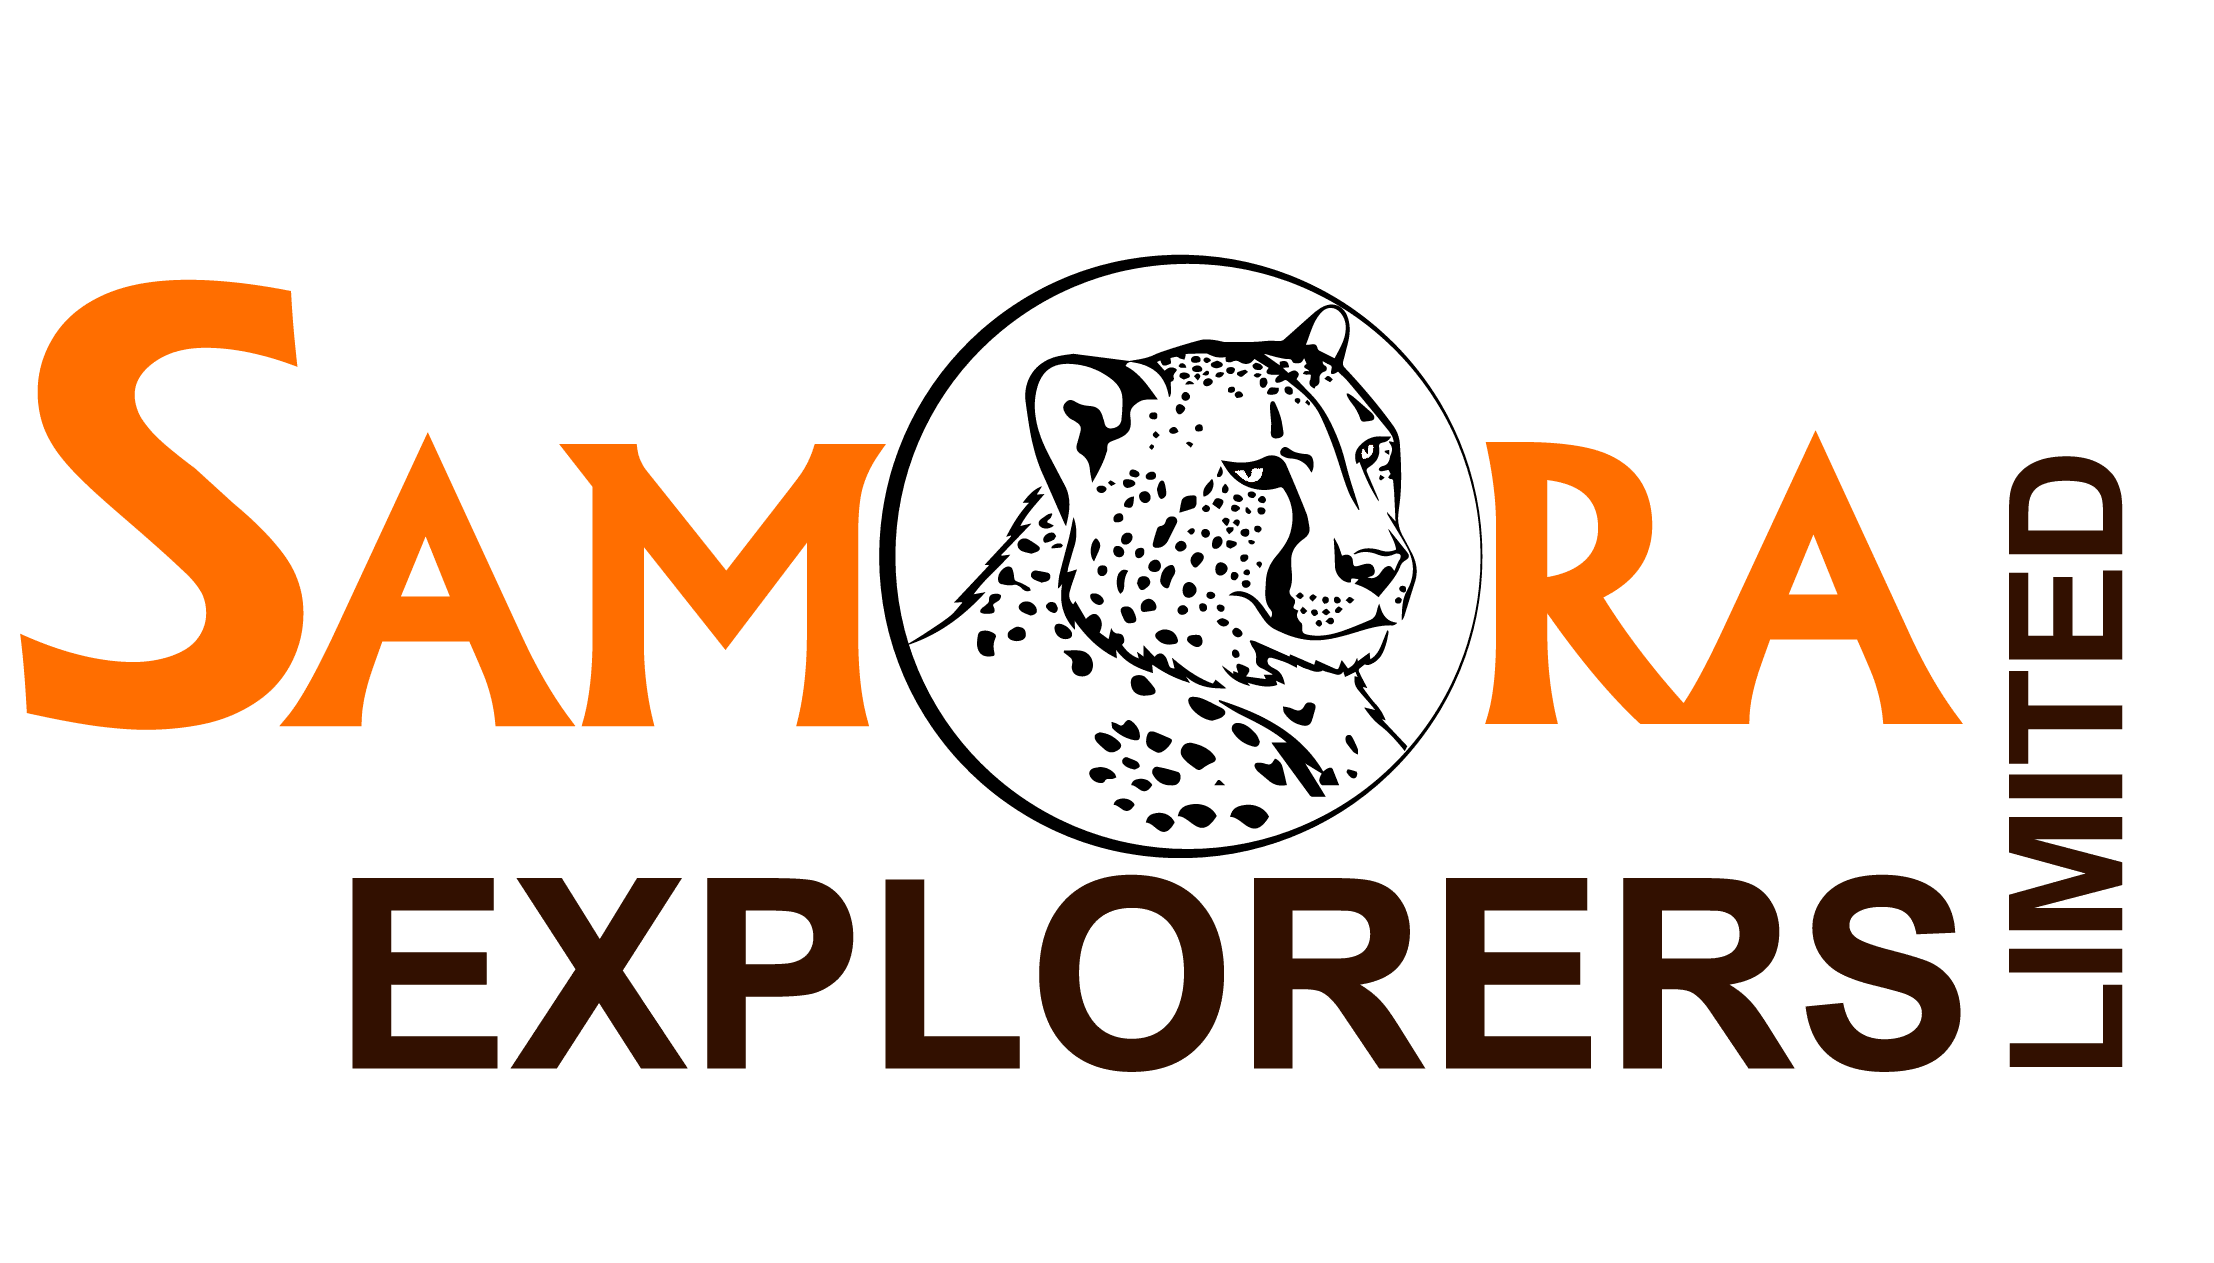 Samora Explorers Limited